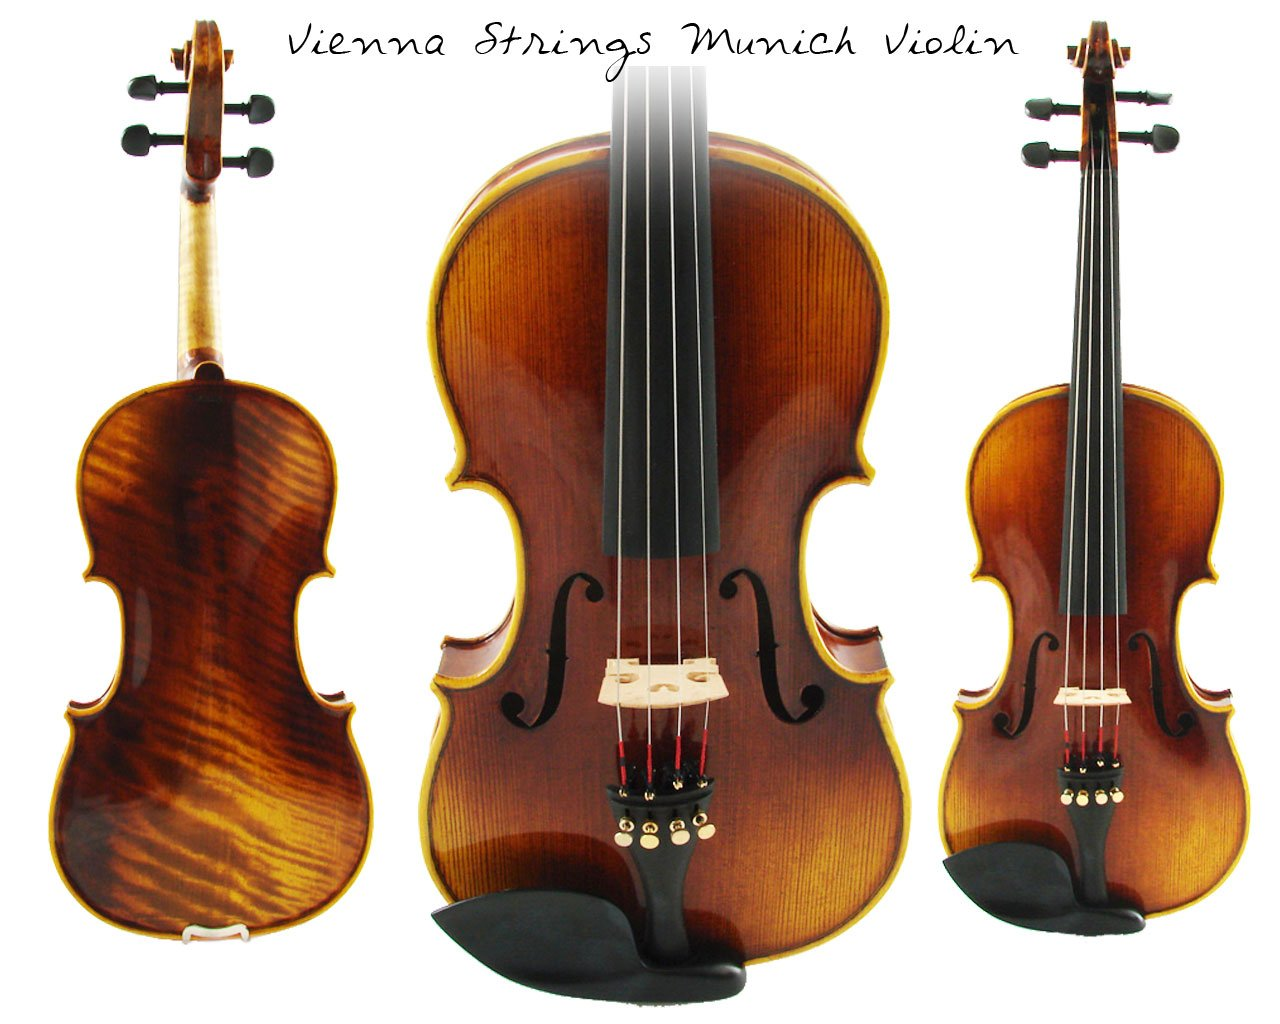 Vienna Strings Munich Violin